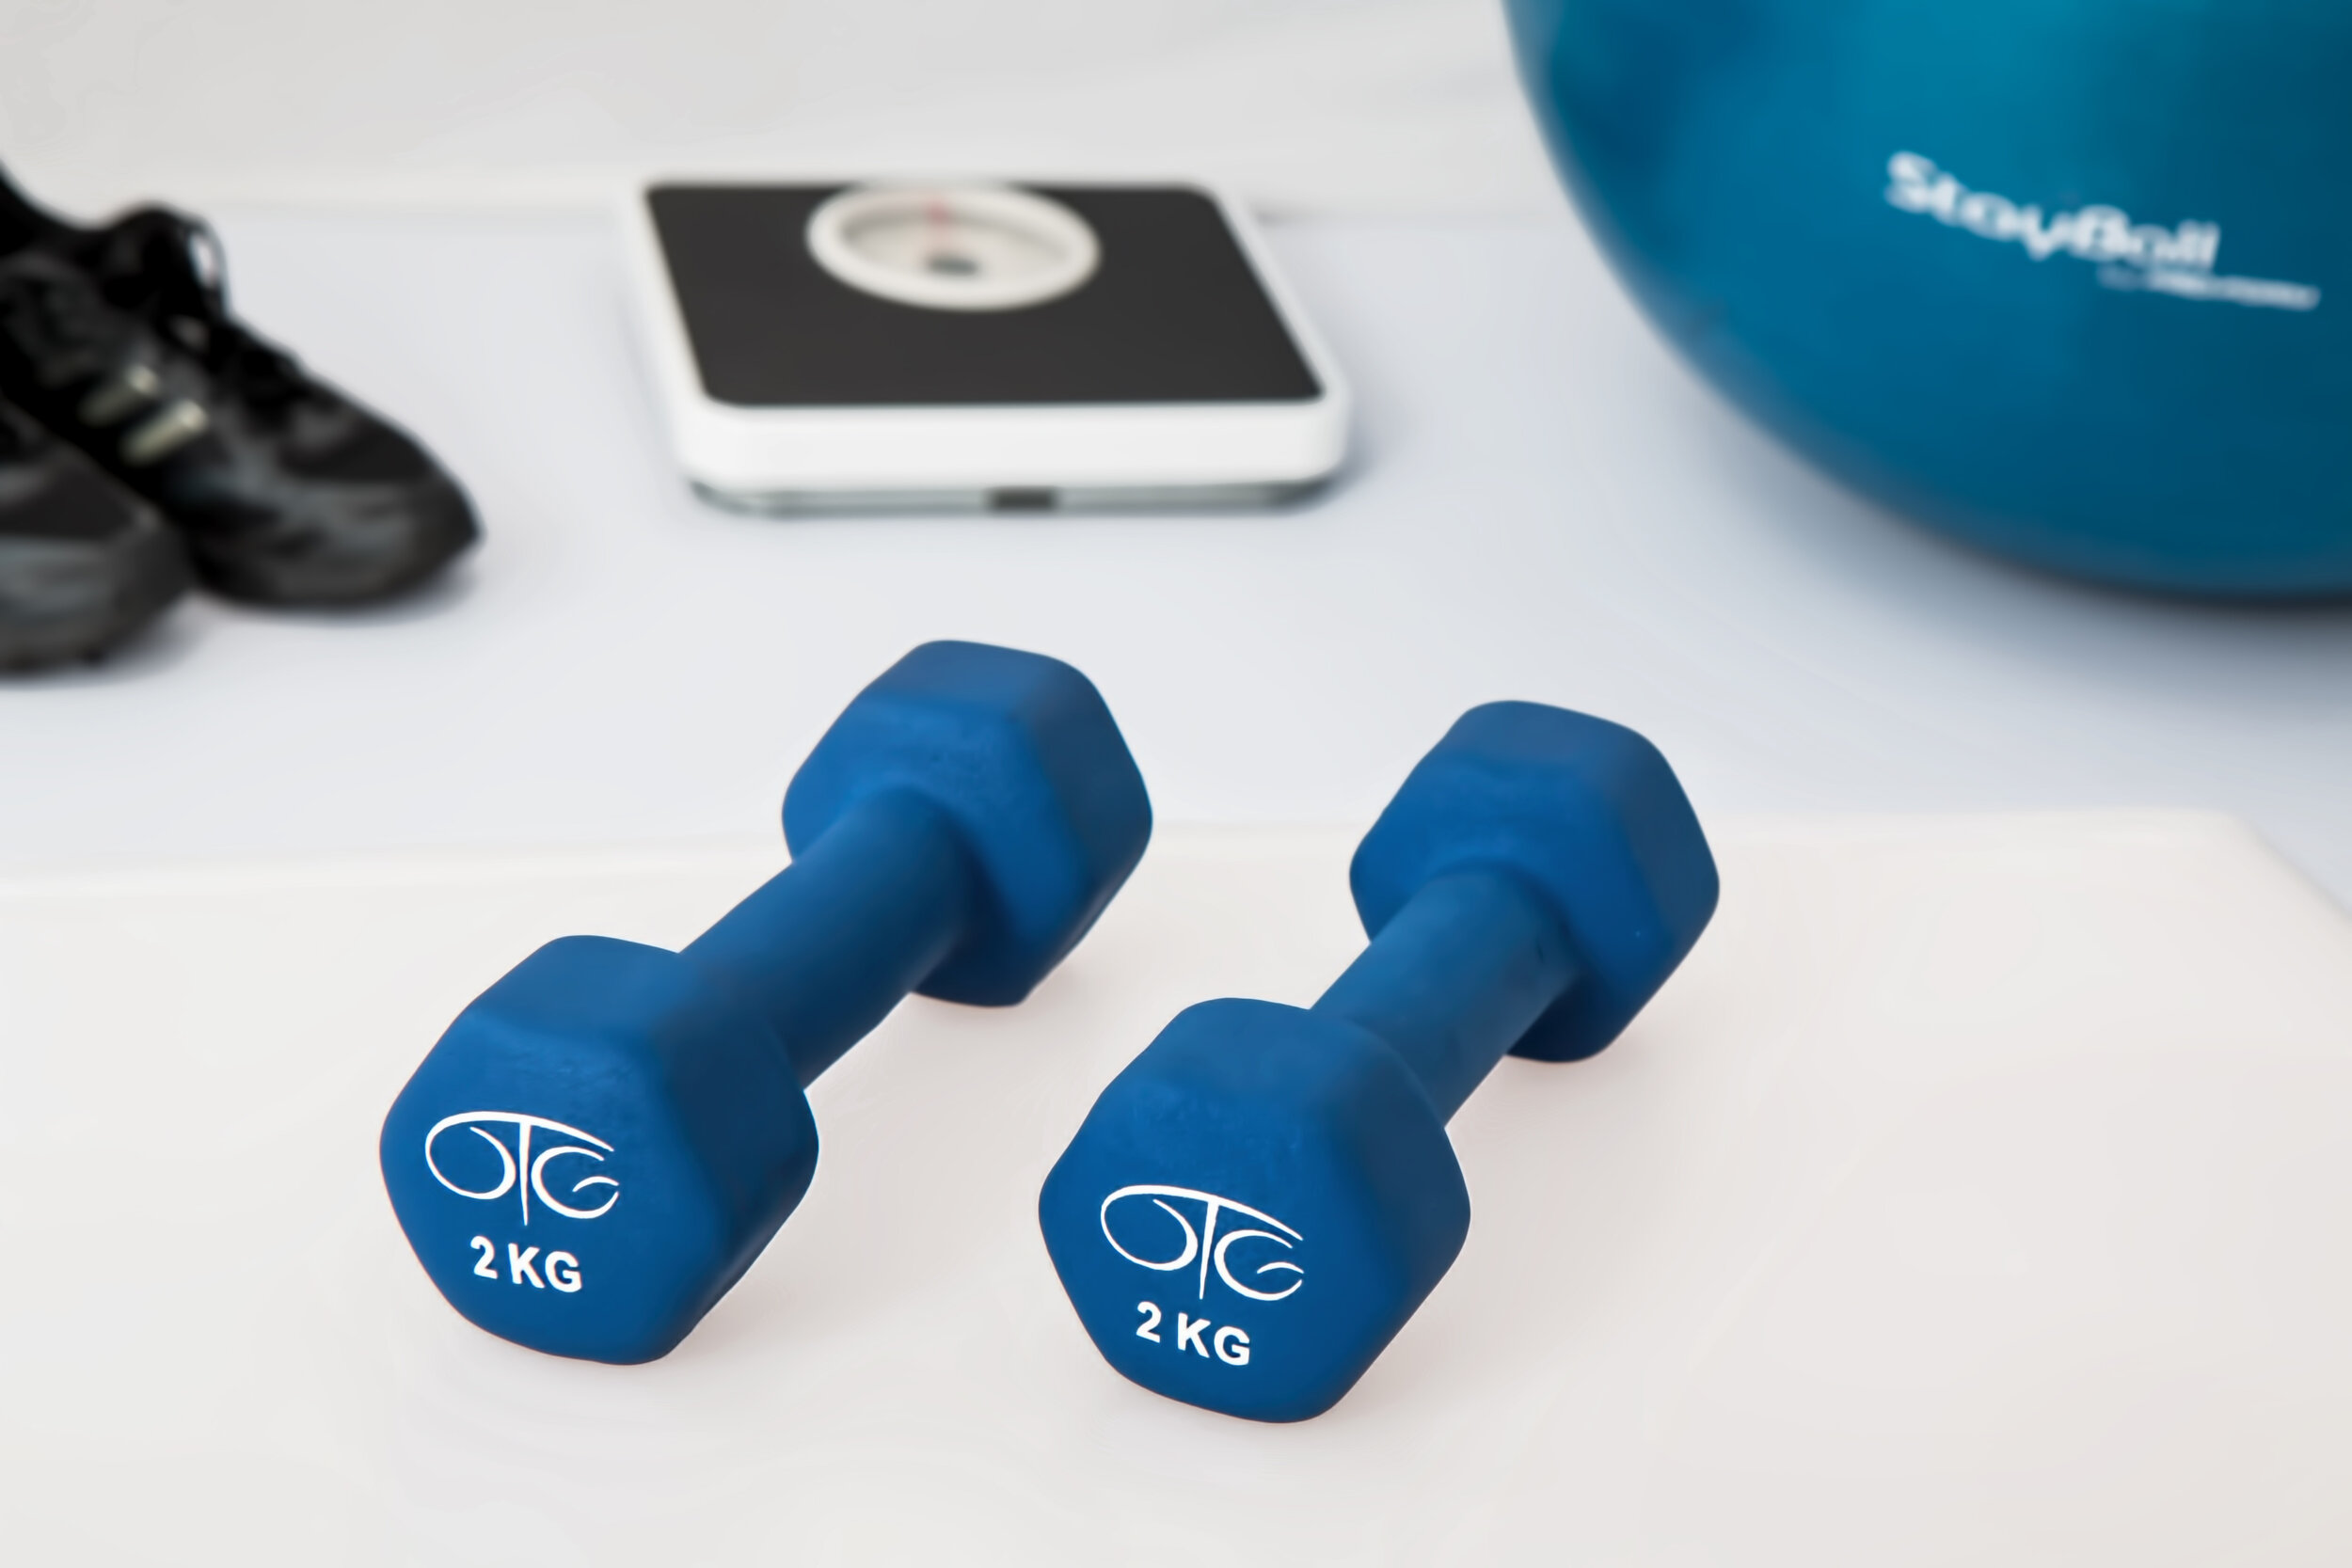 Canva - Two Small Dumbbells.jpg